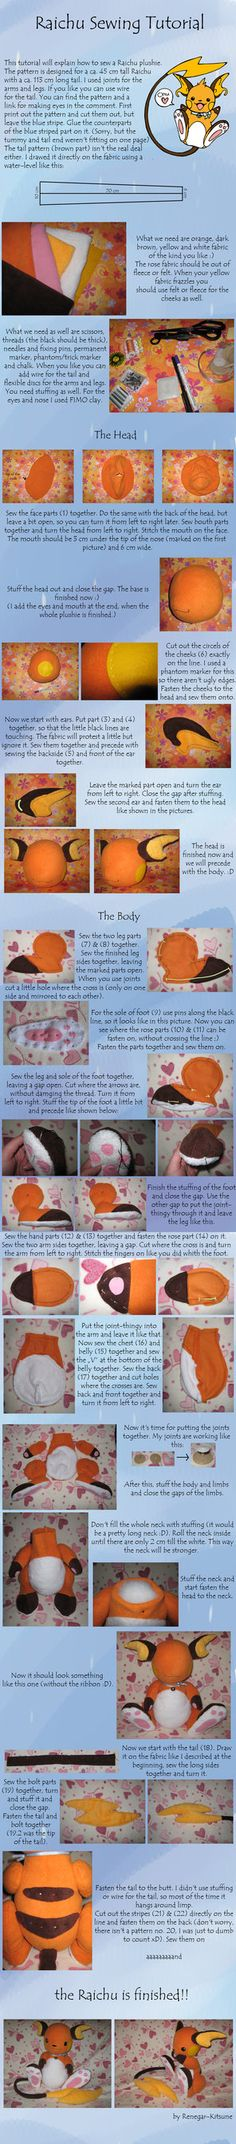 Raichu Sewing Tutorial by *Renegar-Kitsune on deviantART  Pikachu evolves into this one.